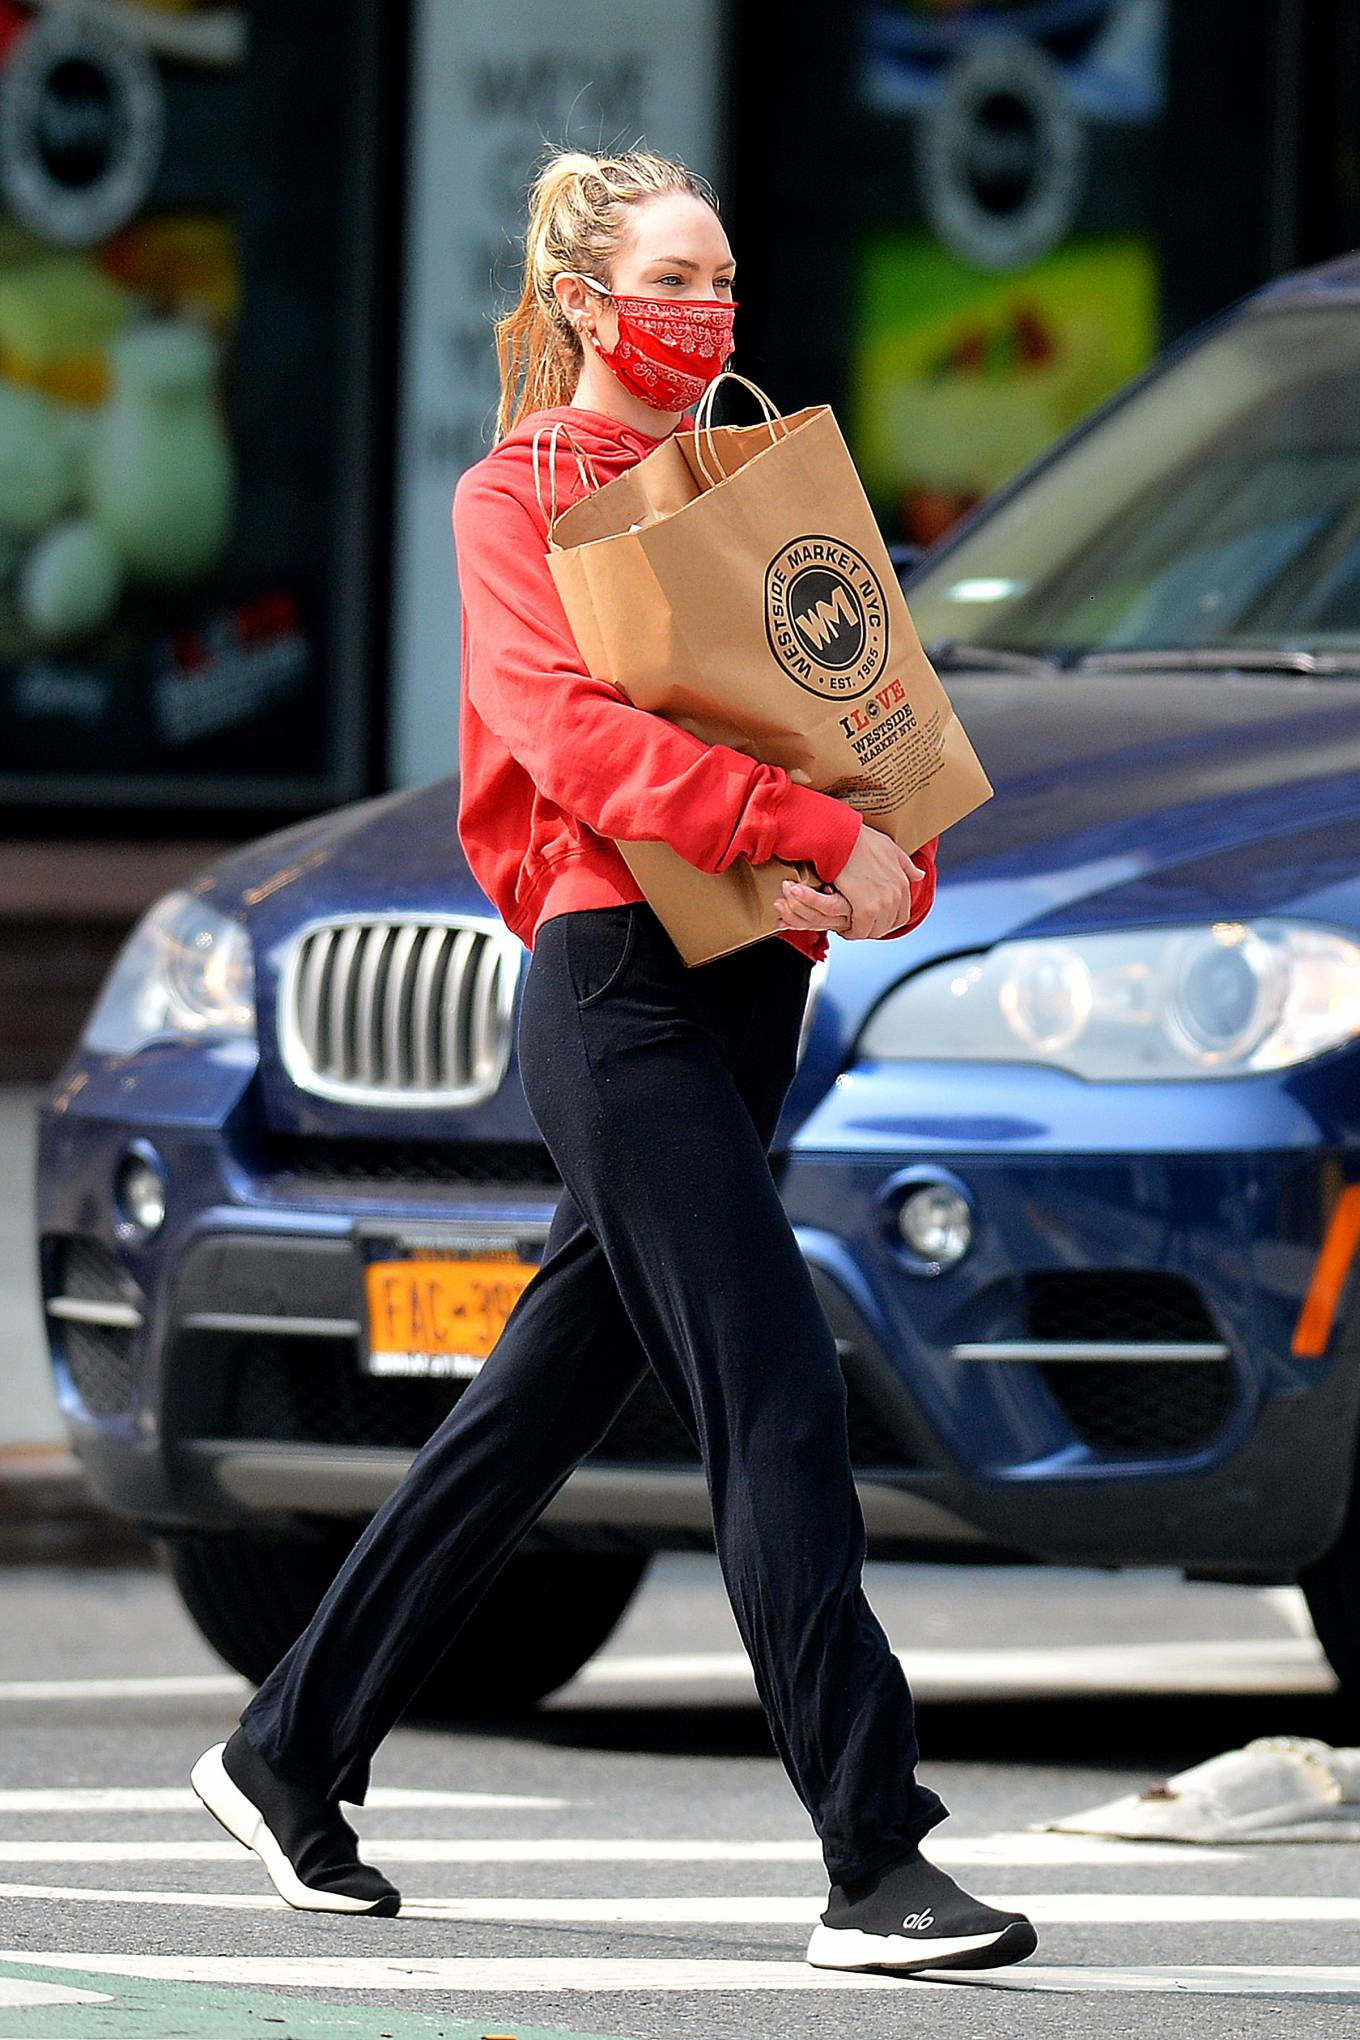 Candice Swanepoel 2020 : Candice Swanepoel – Grocery shopping candids in New York City -04